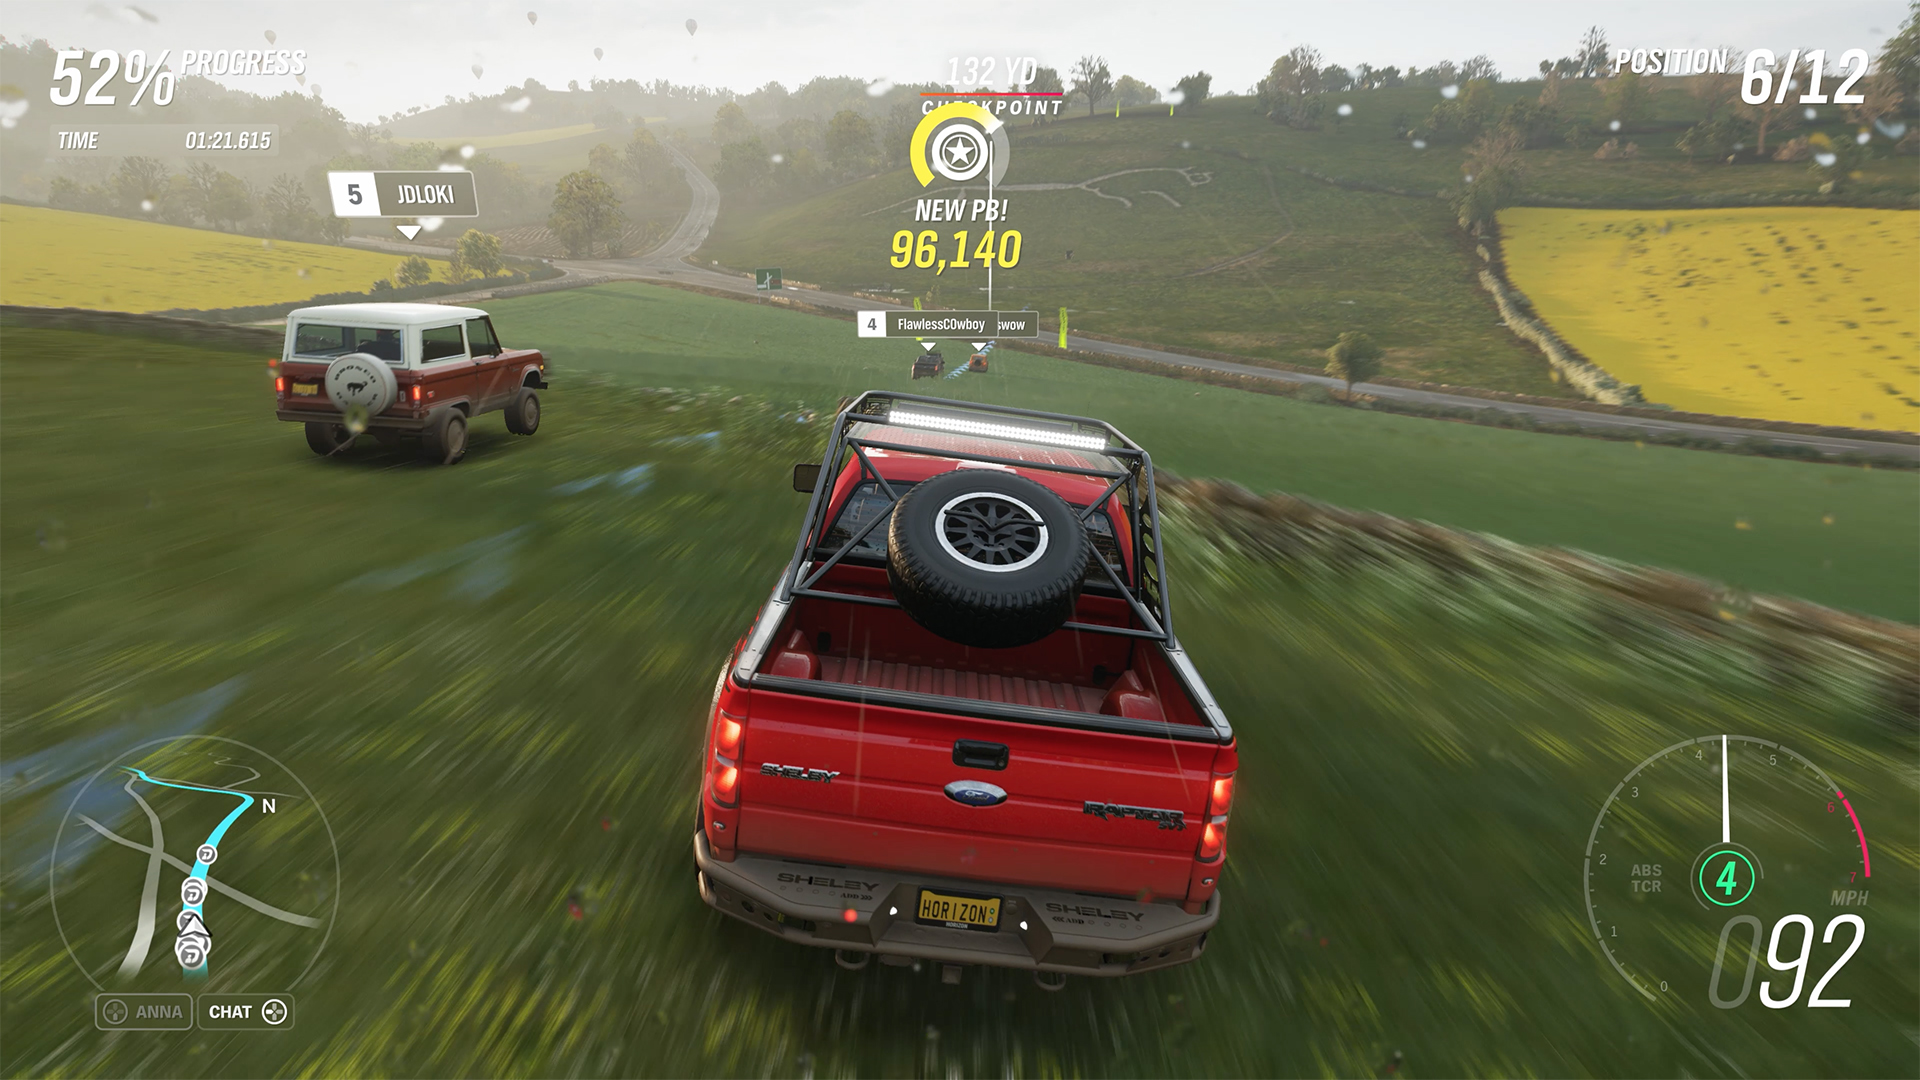 Forza Horizon 4 Xbox One X Preview: We Play the First Hour